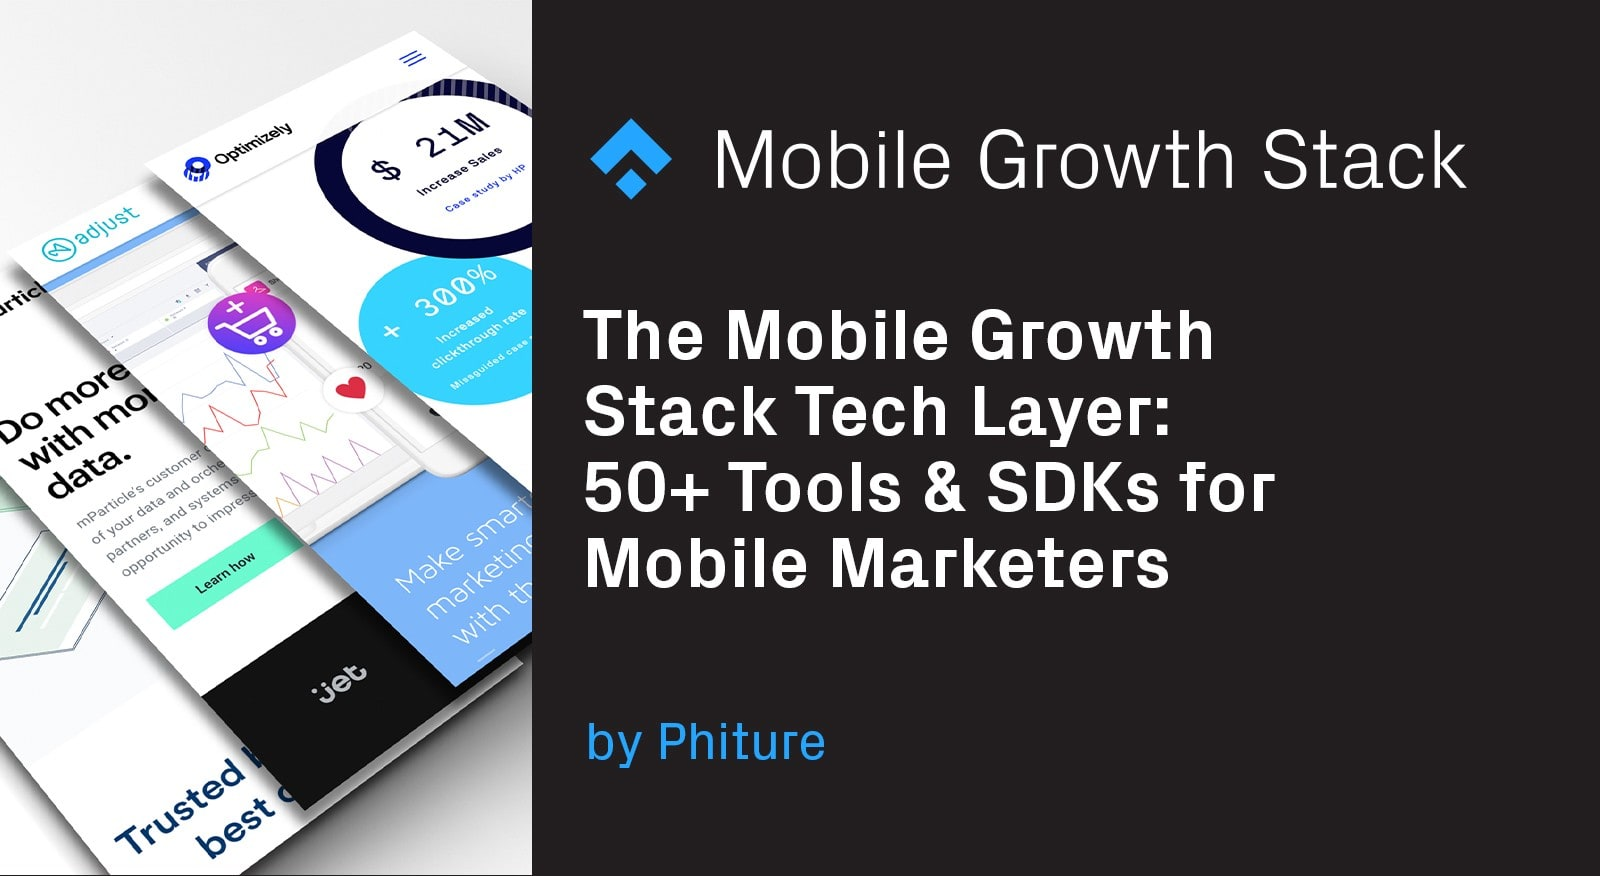 The Mobile Growth Stack Tech Layer- 50+ Tools & SDKs for Mobile Marketers